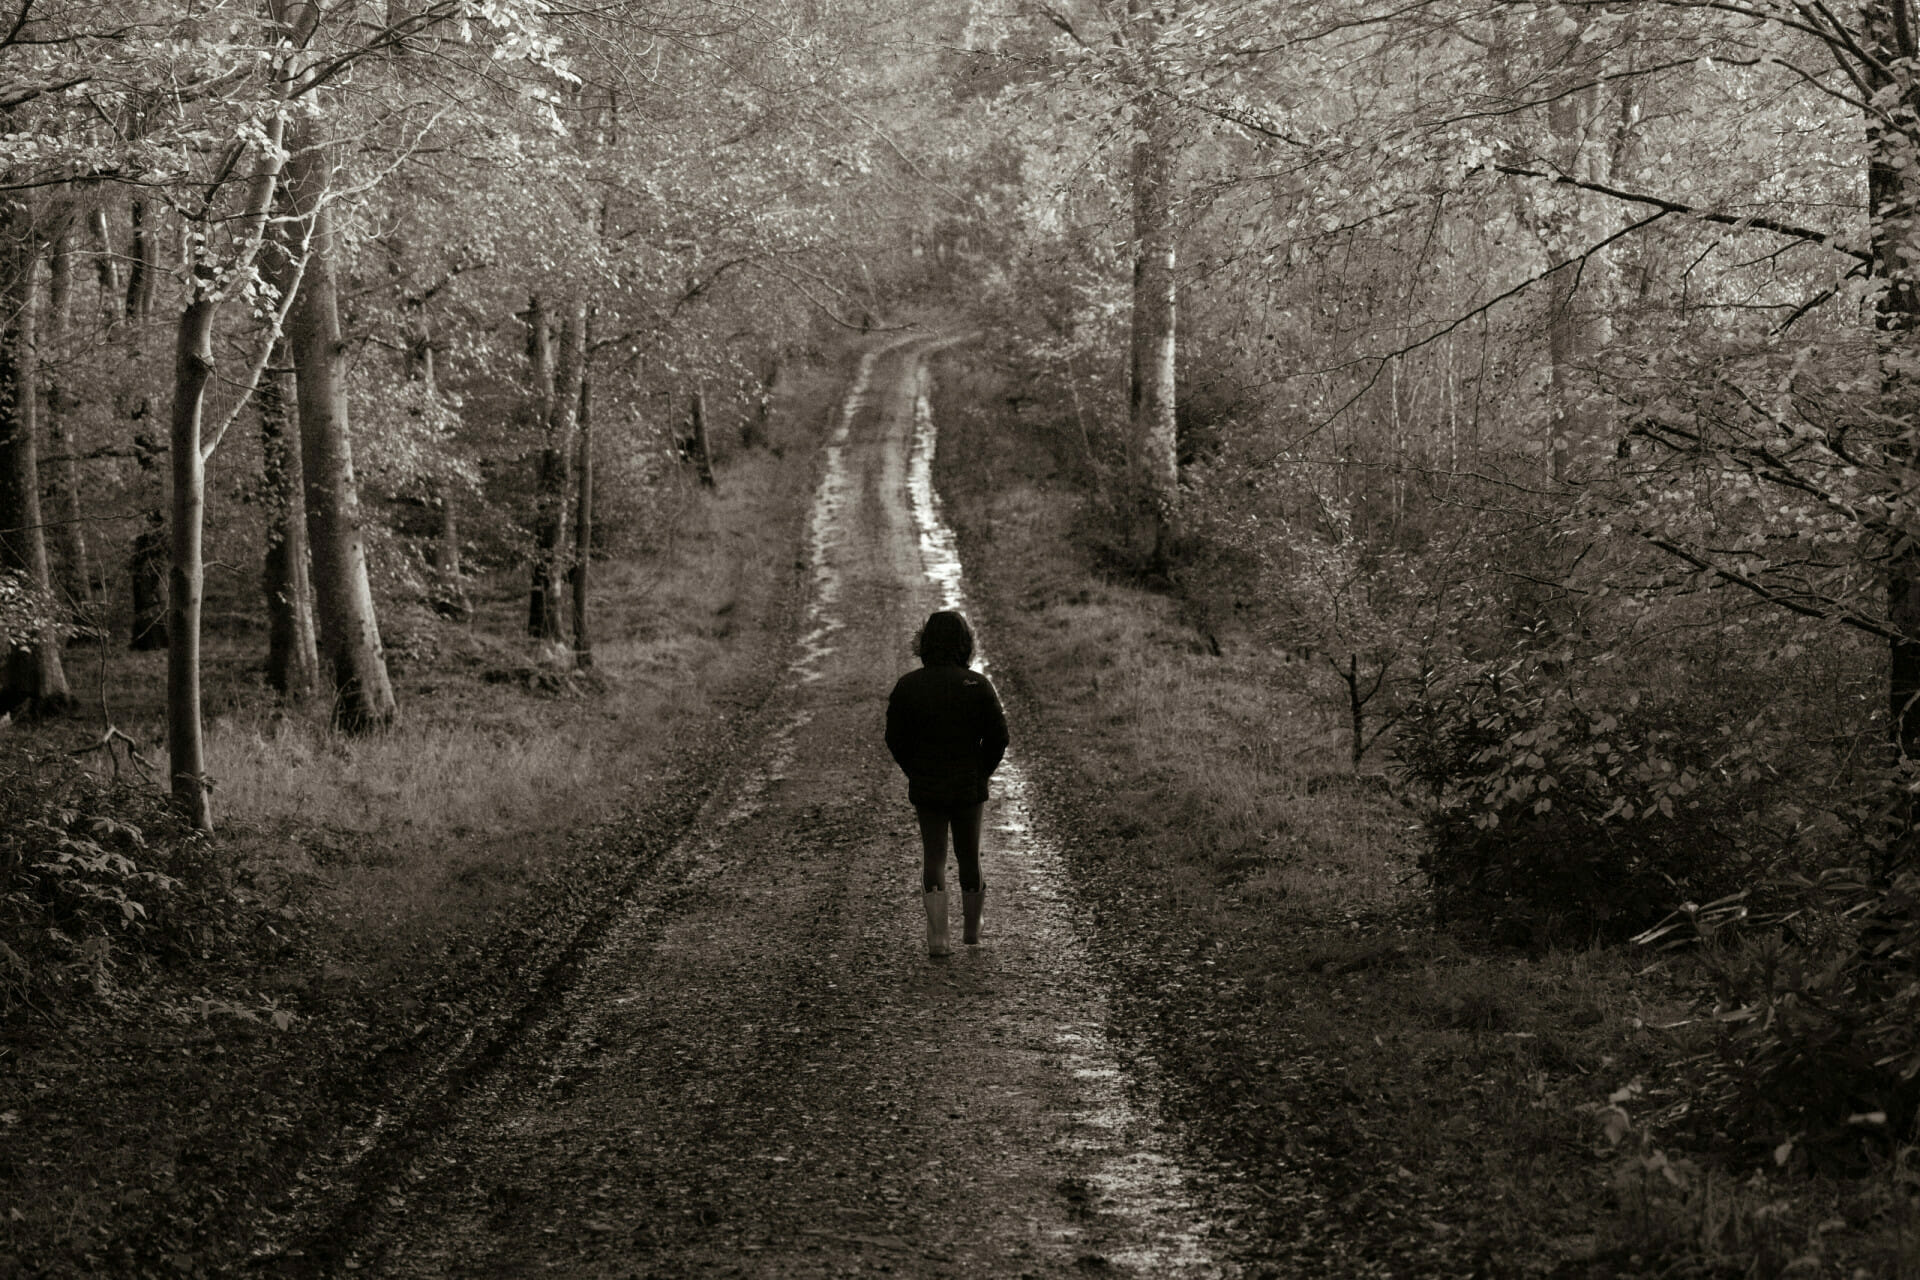 Person walking alone on a forest track.